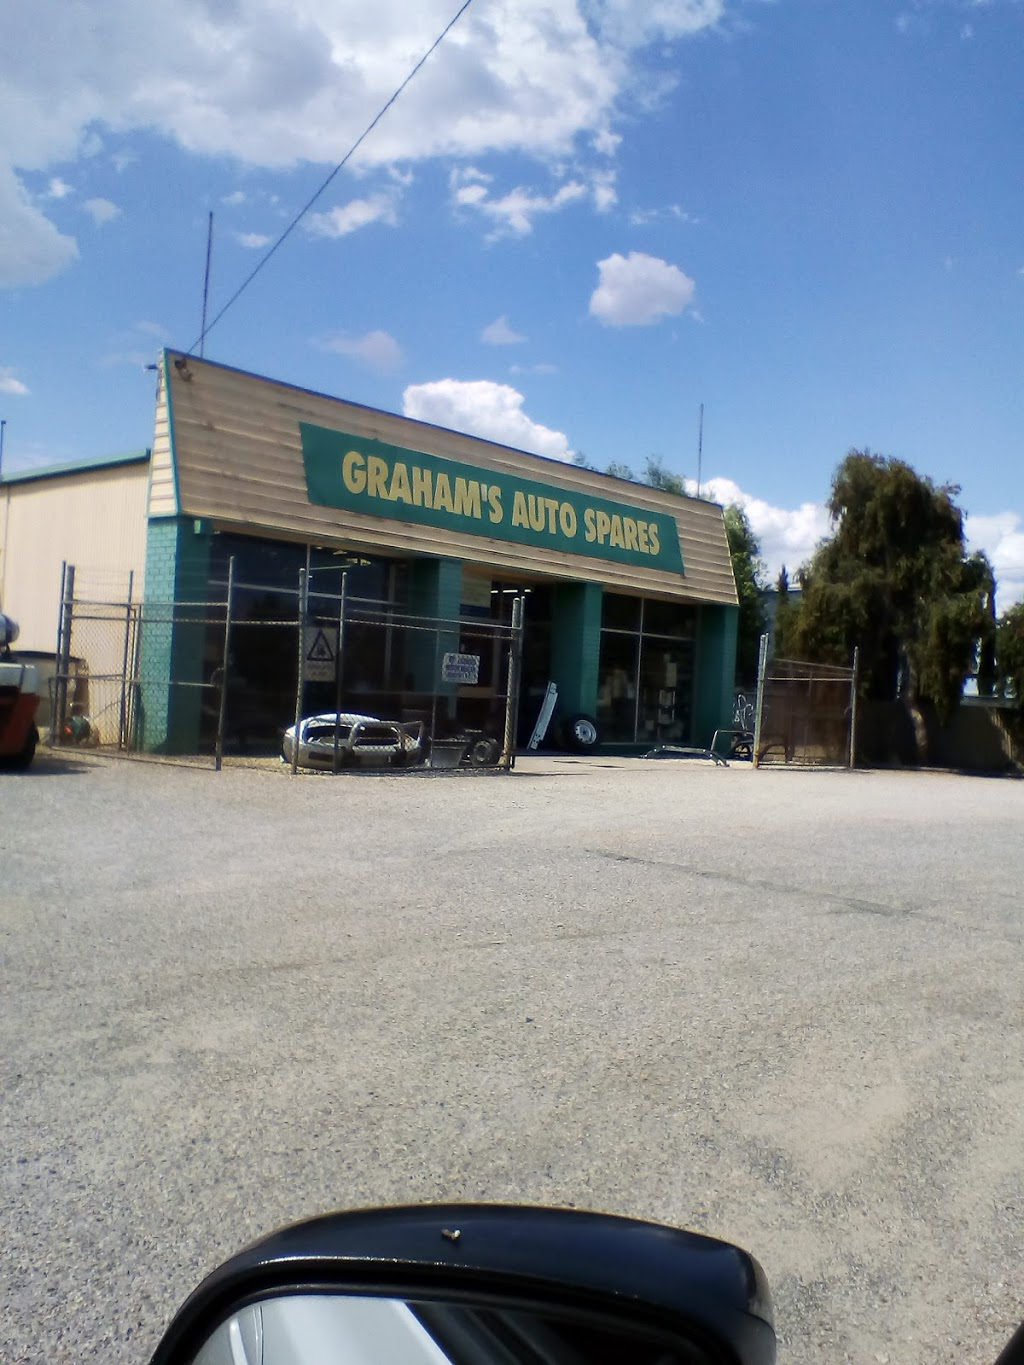 Grahams Auto Spares | car repair | 154 North St, North Albury NSW 2640, Australia | 0260216680 OR +61 2 6021 6680